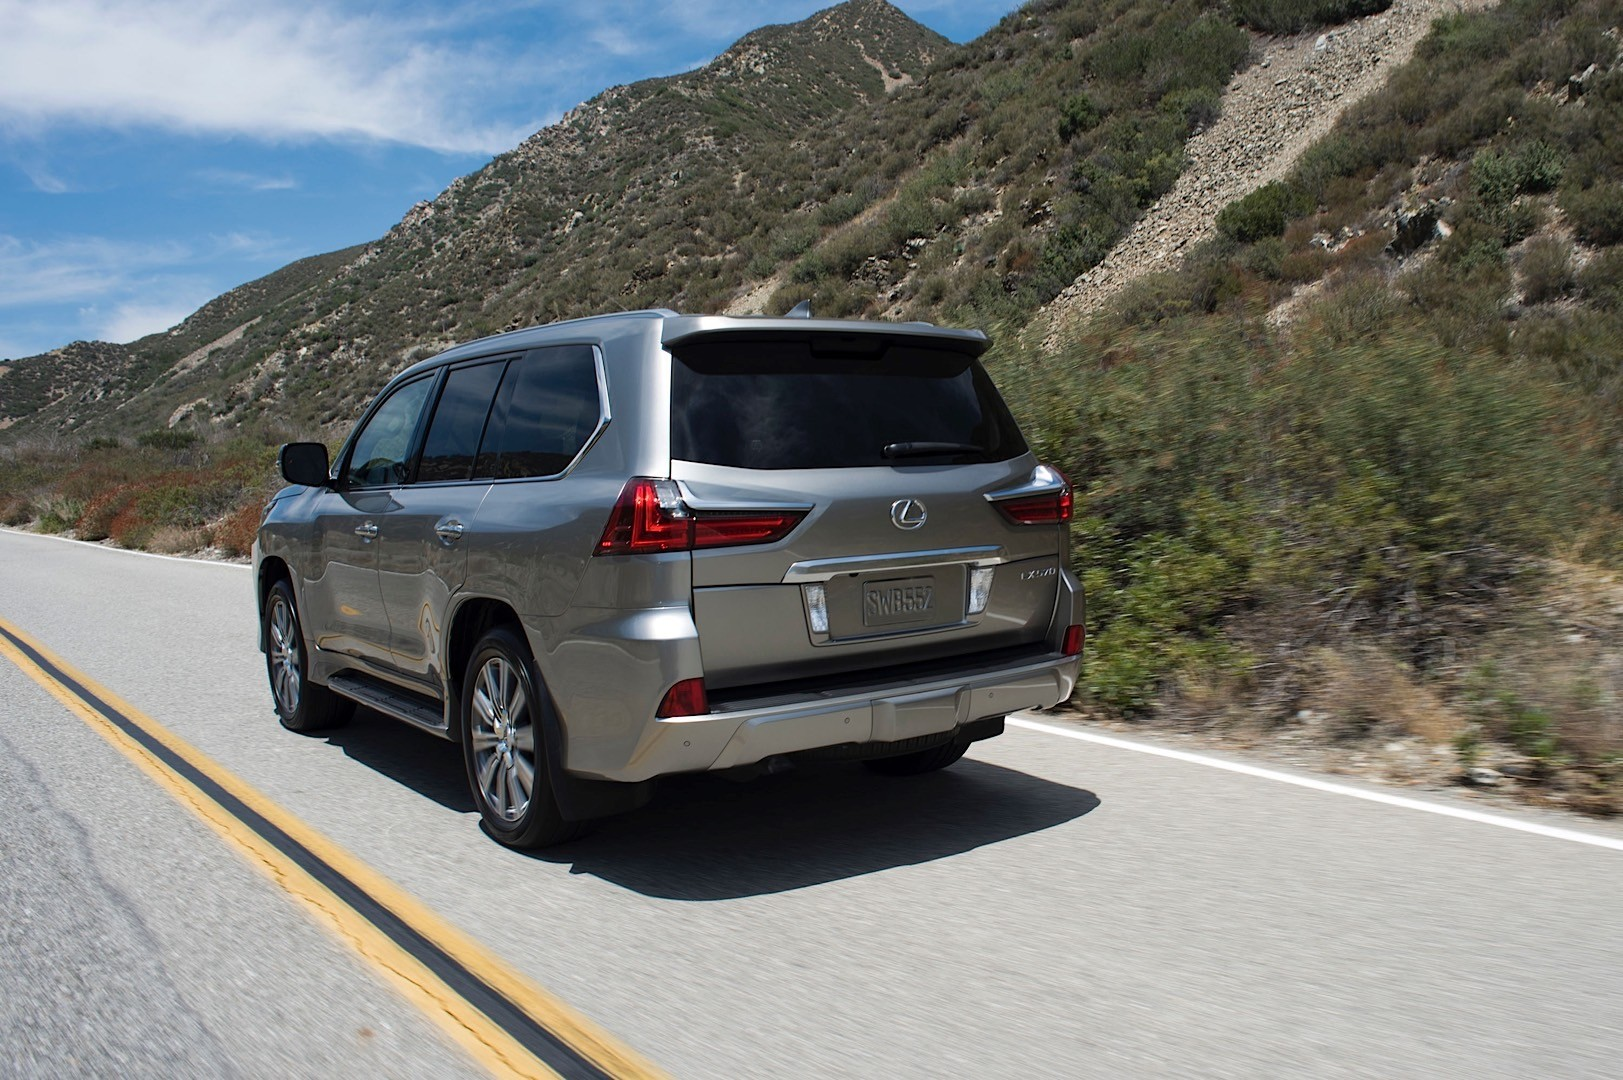 2016 lexus lx 570 facelift shows up at pebble beach. Black Bedroom Furniture Sets. Home Design Ideas